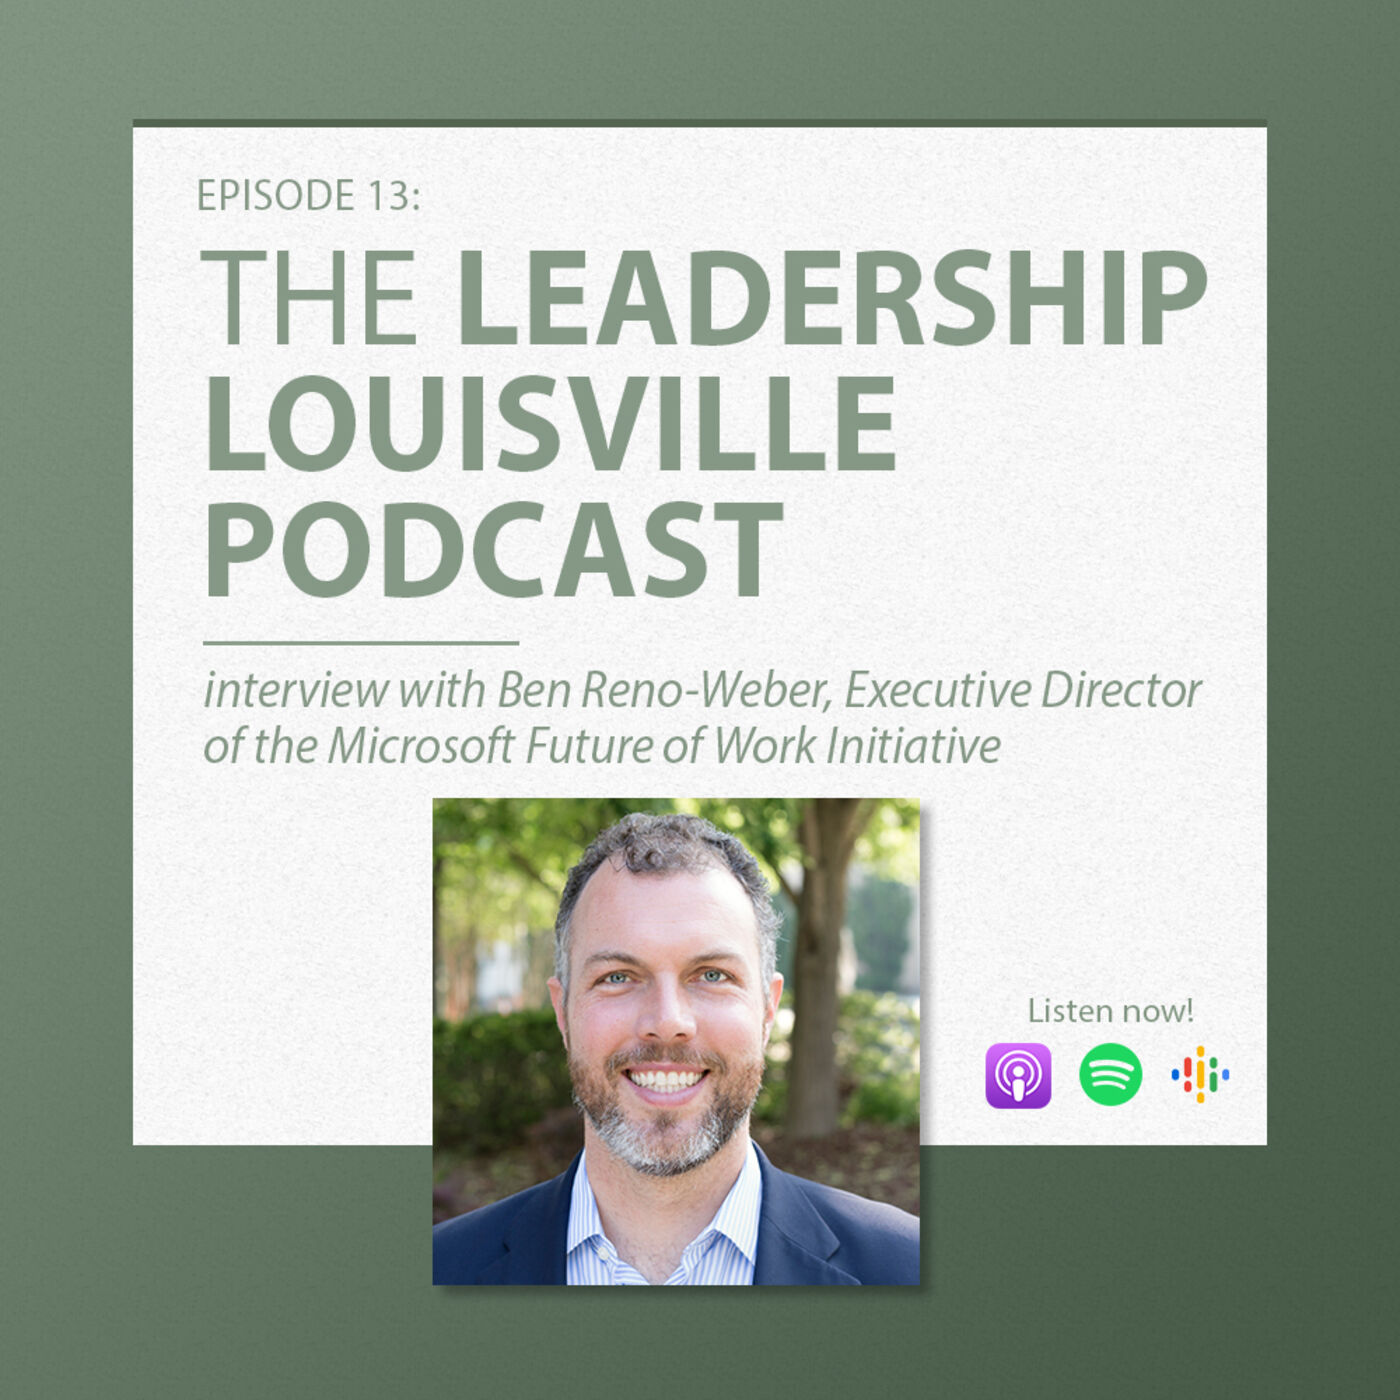 On returning home: how we can be better leaders when we see the world with Ben Reno-Weber, Executive Director of the Microsoft Future of Work Initiative